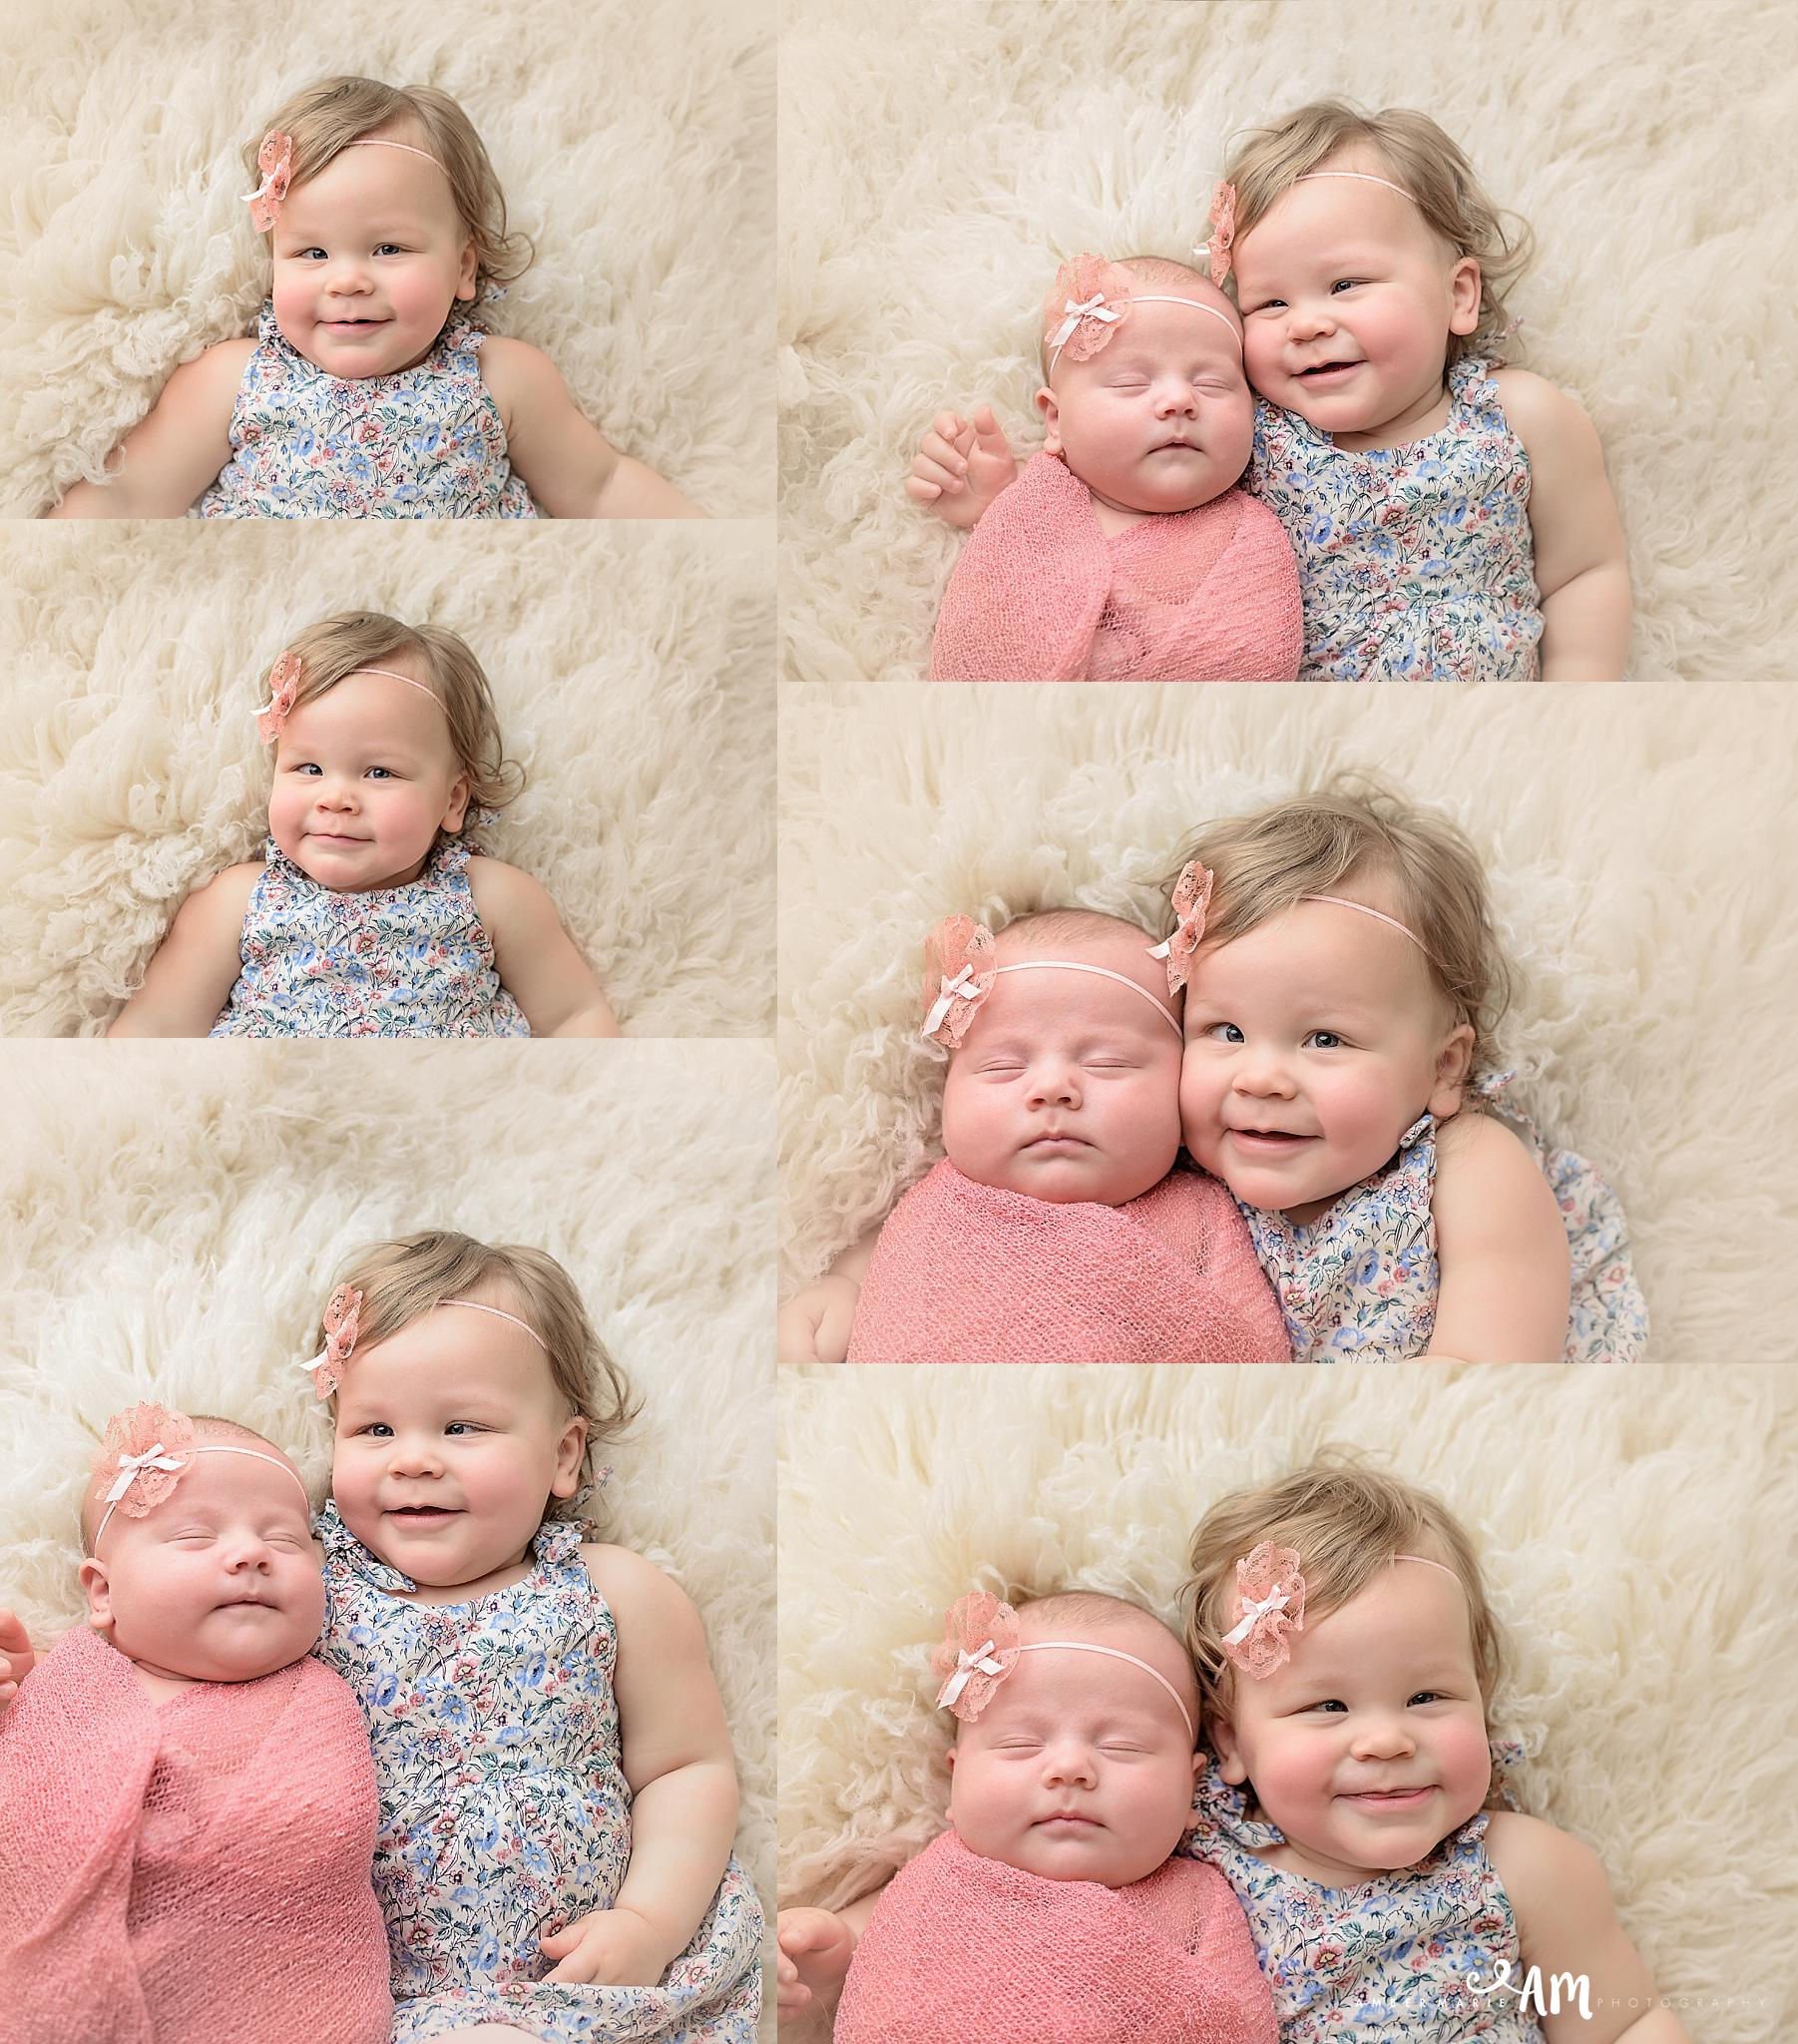 Northfield_Newborn_Photographer1.jpg